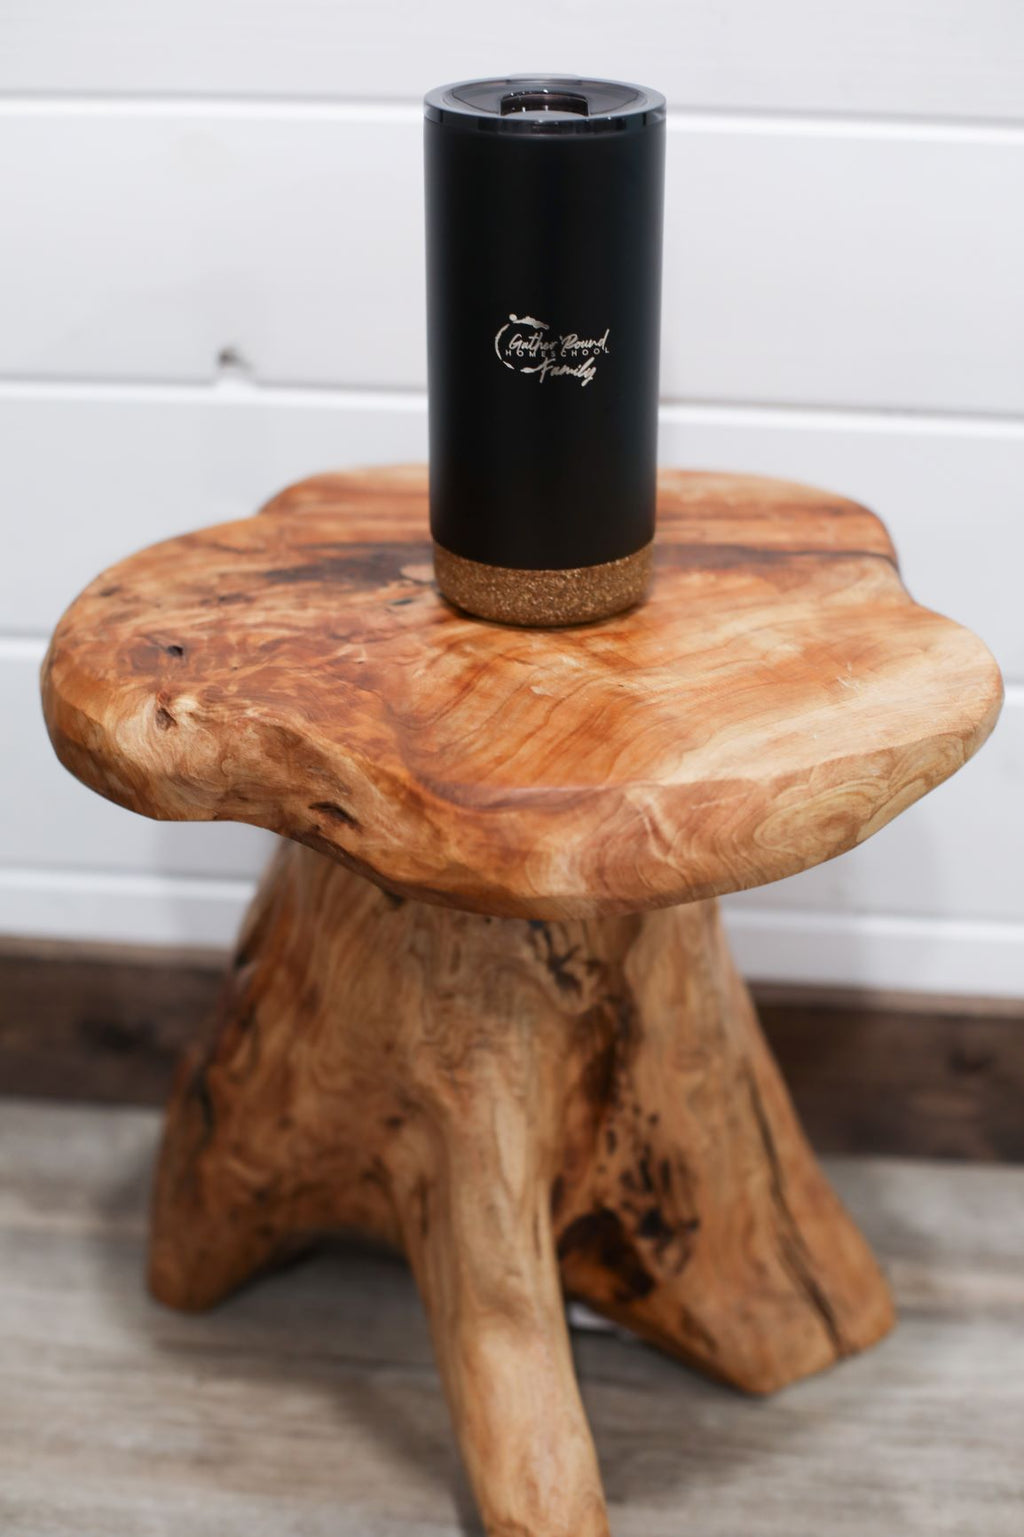 Gather 'Round 16 oz Travel Mug